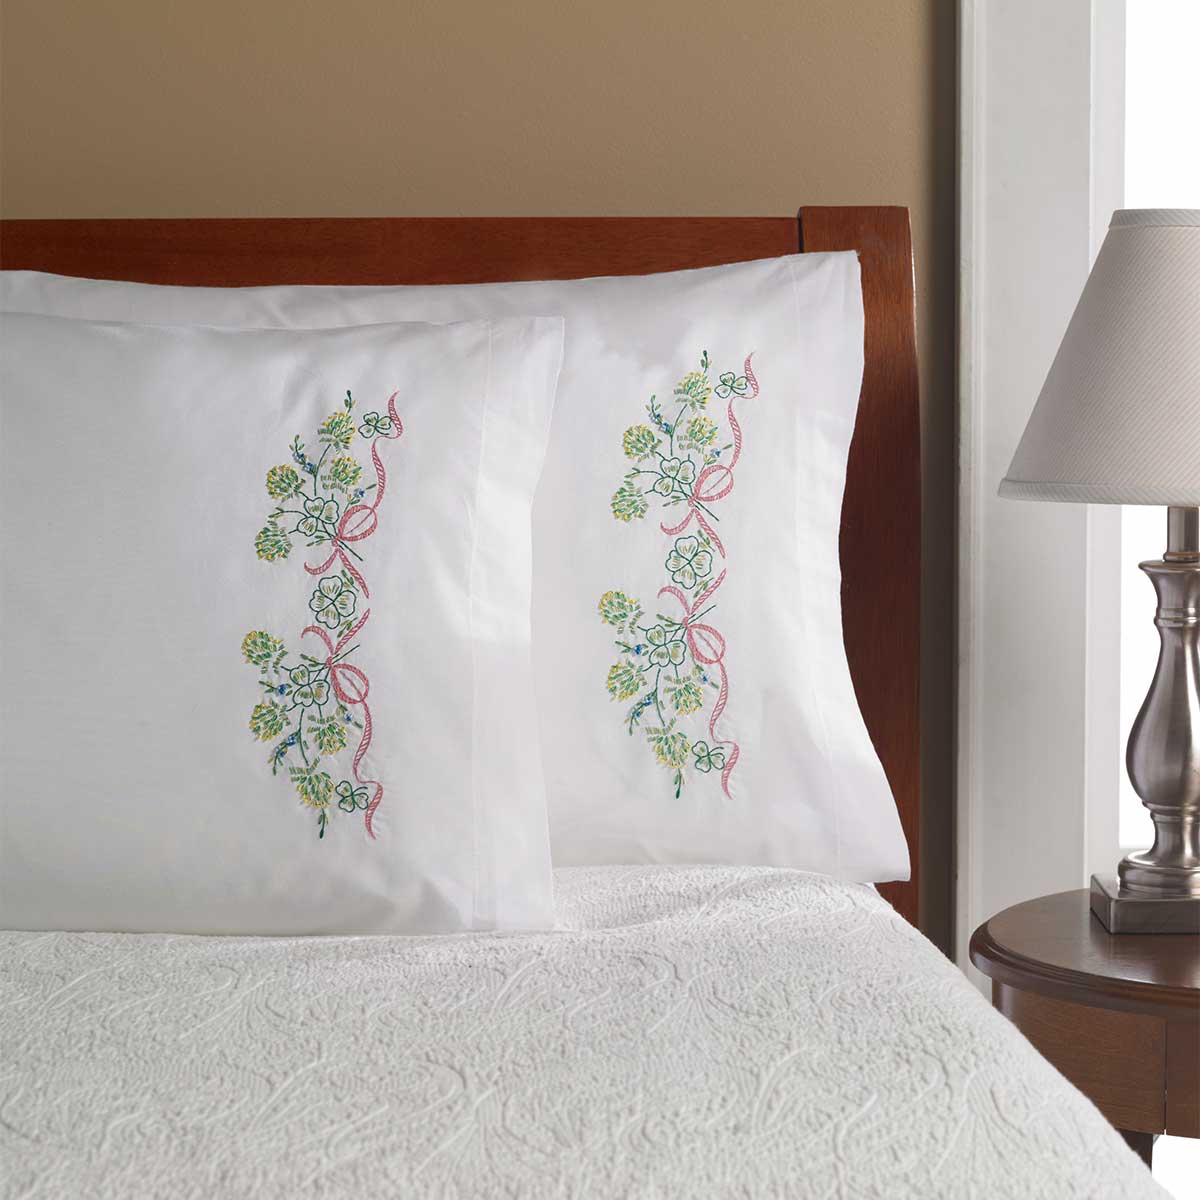 Bucilla ® Stamped Cross Stitch & Embroidery - Pillowcase Pairs - Clover